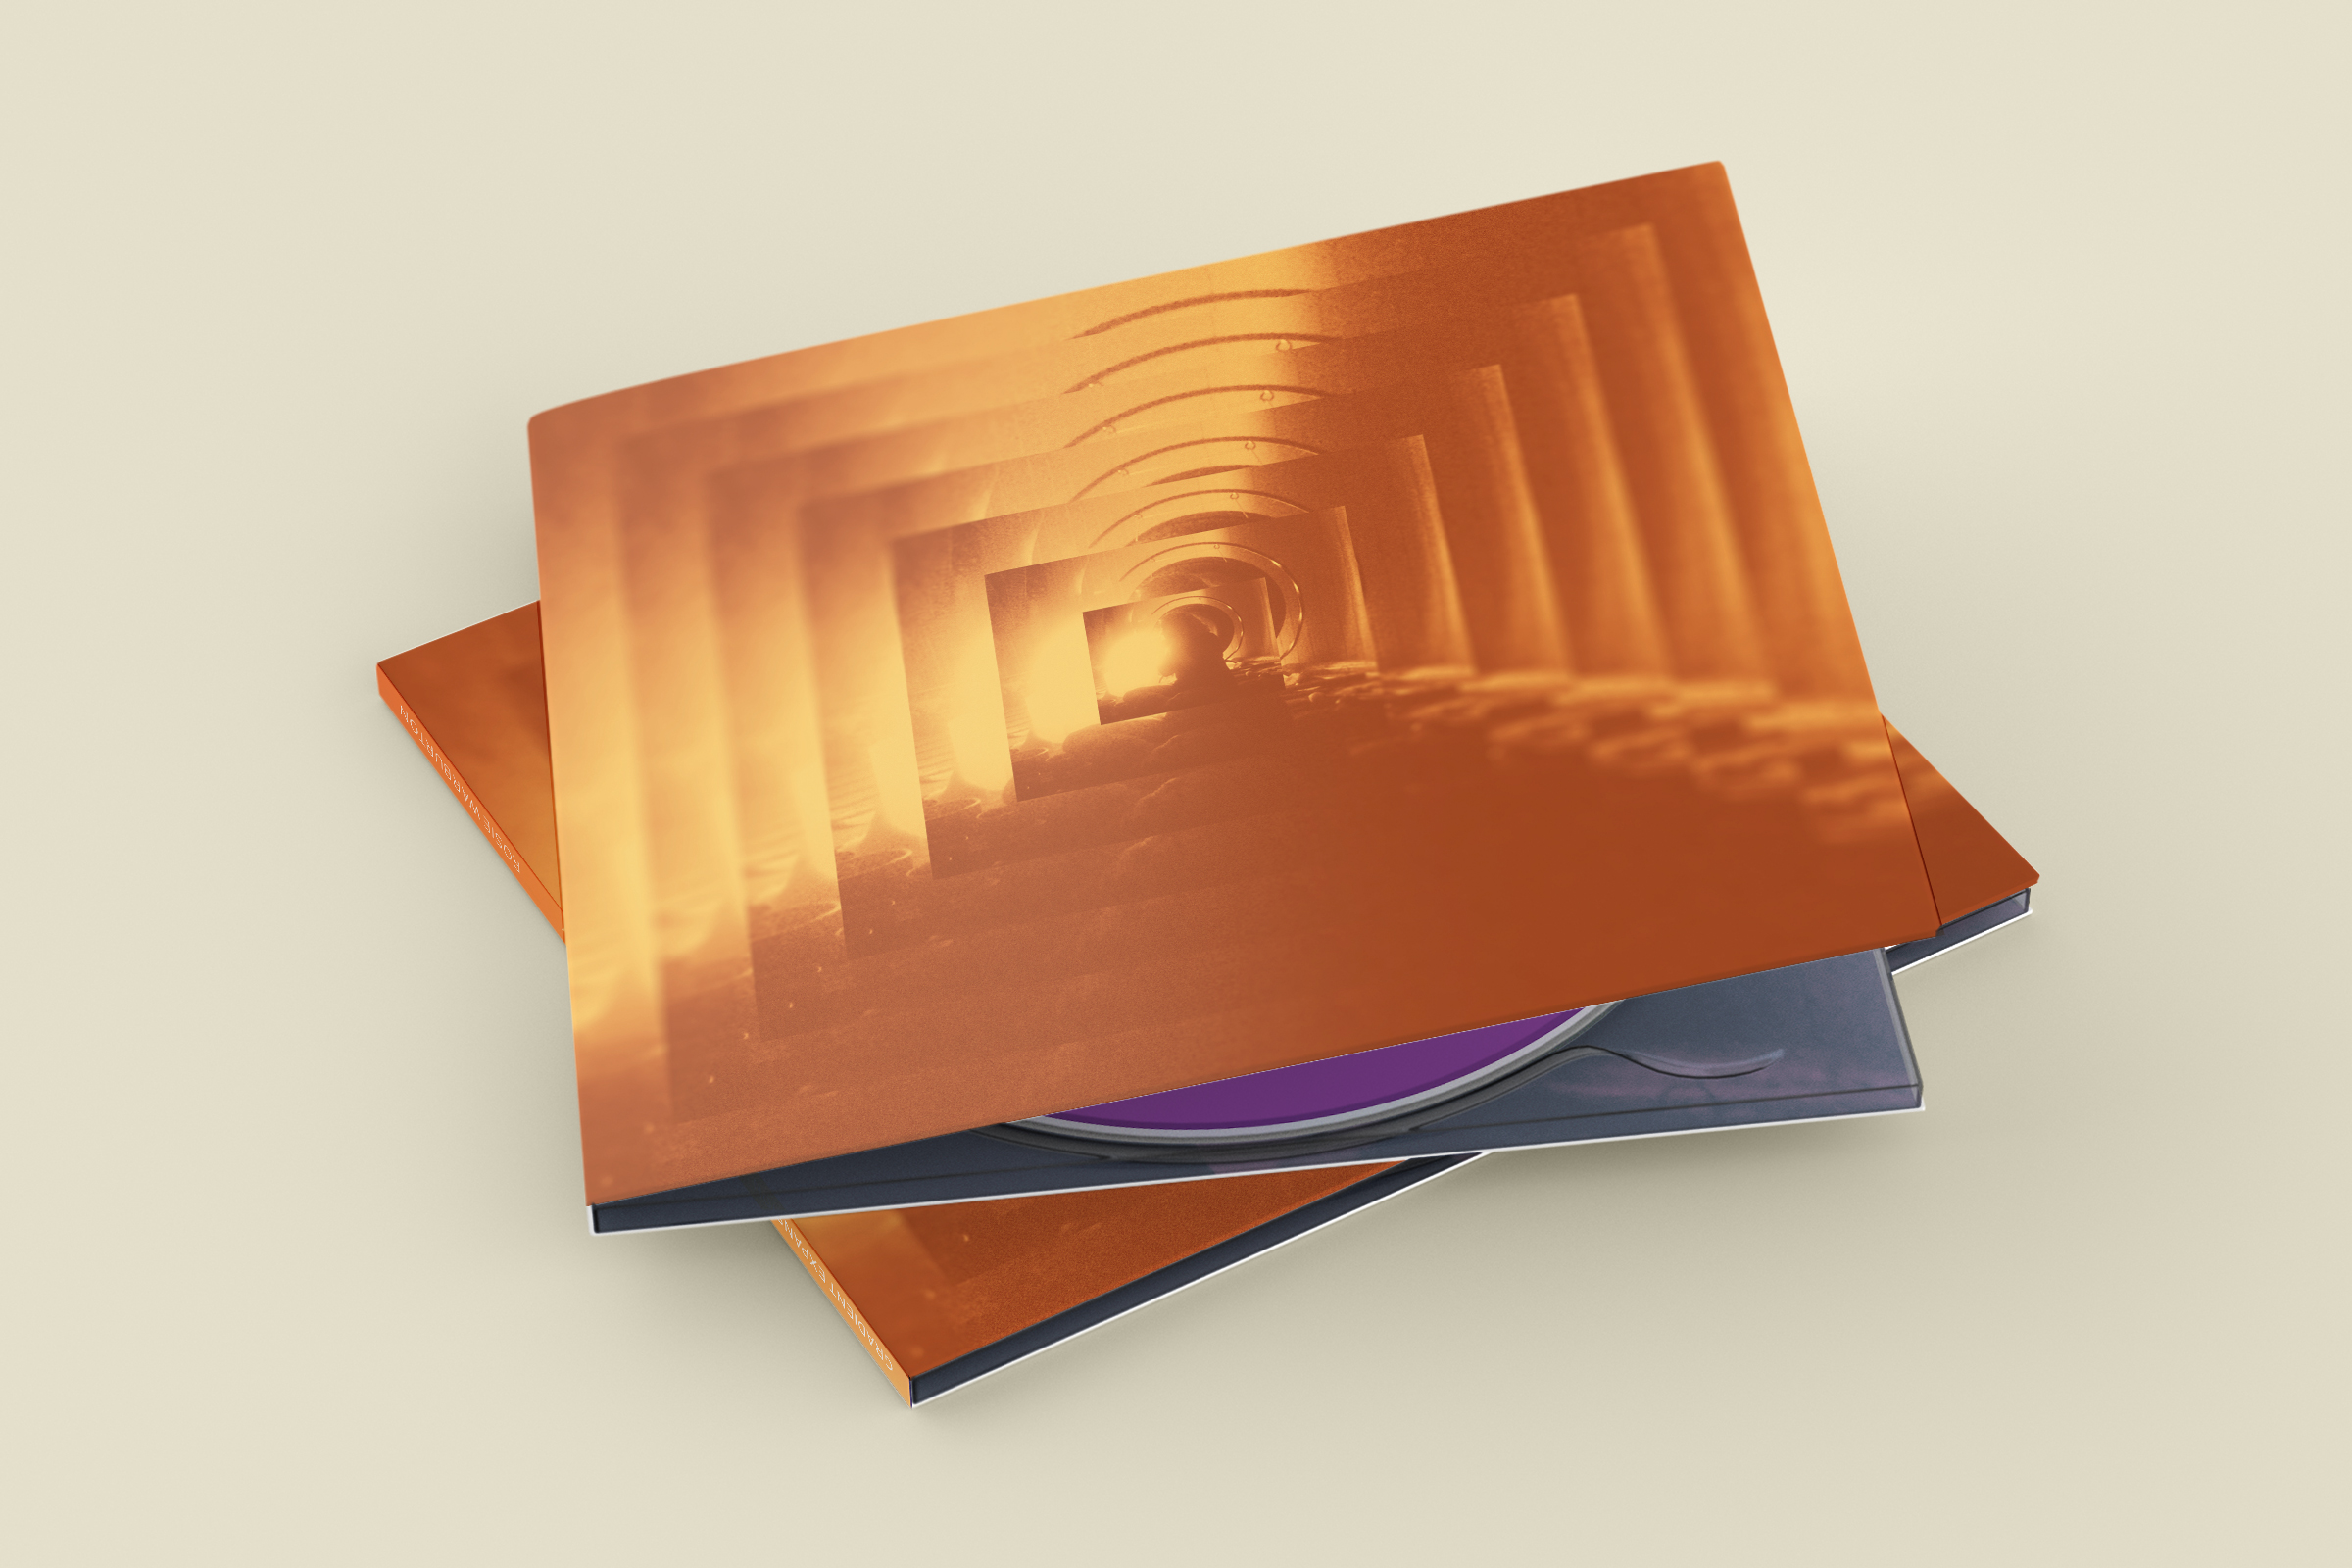 The-MVA-Gradient-Expansion-1-CD-cover_mockup.jpg